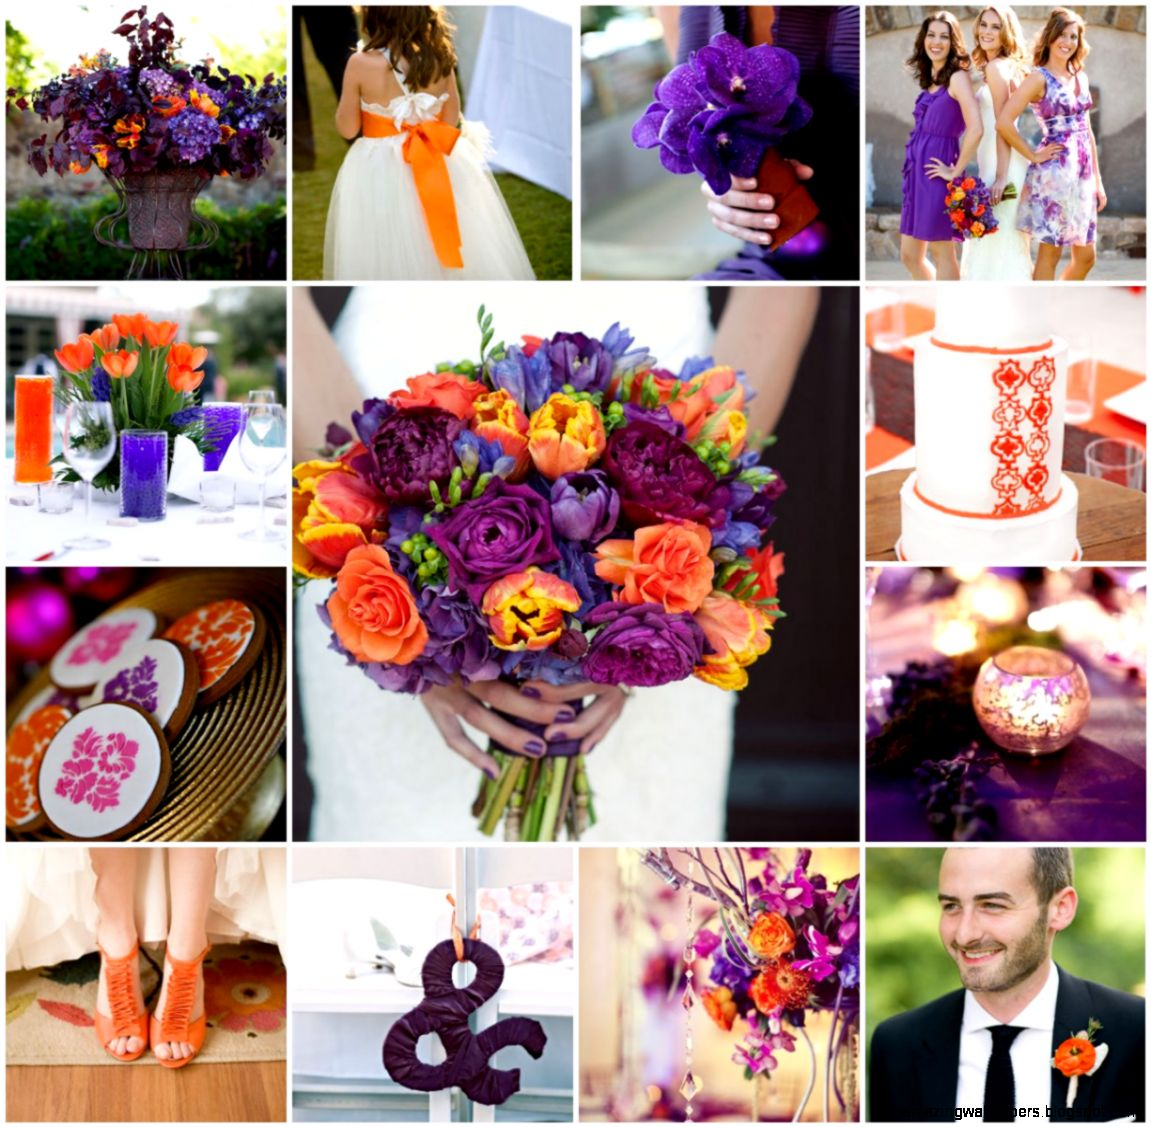 1000 images about wedding color on Pinterest  Orange weddings